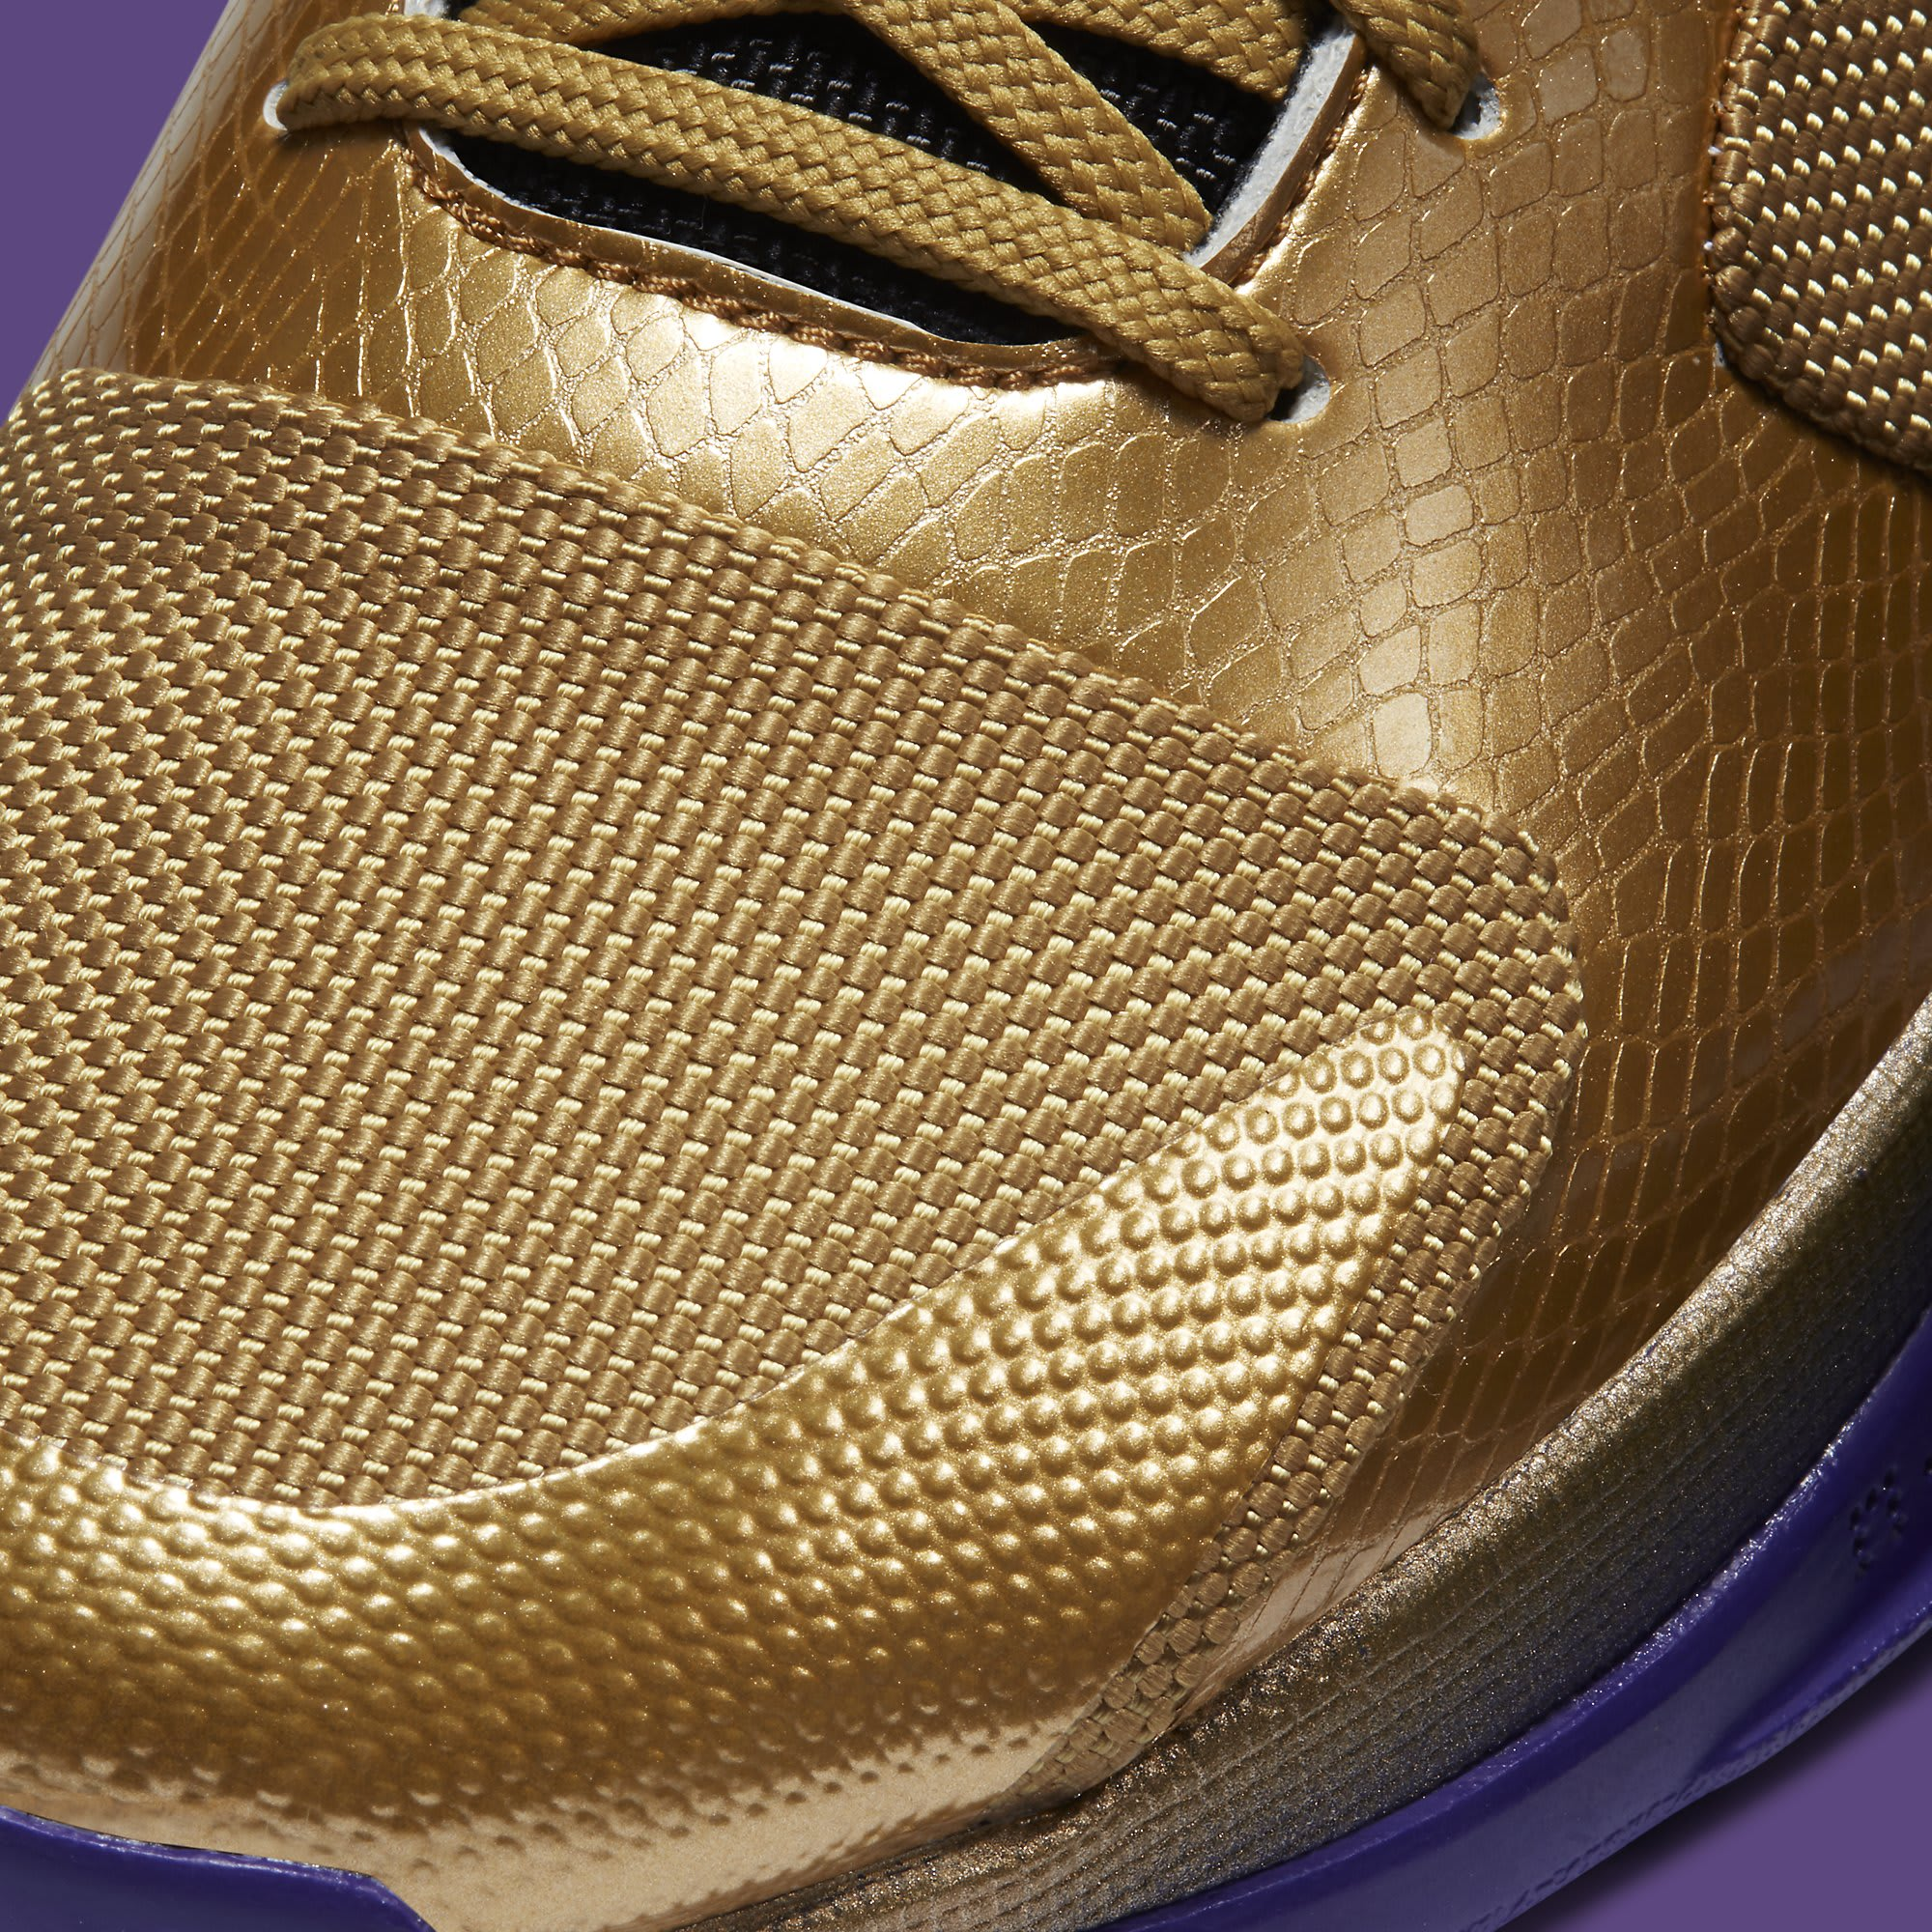 Undefeated x Nike Kobe 5 Gold Hall of Fame Release date DA6809-700 Toe